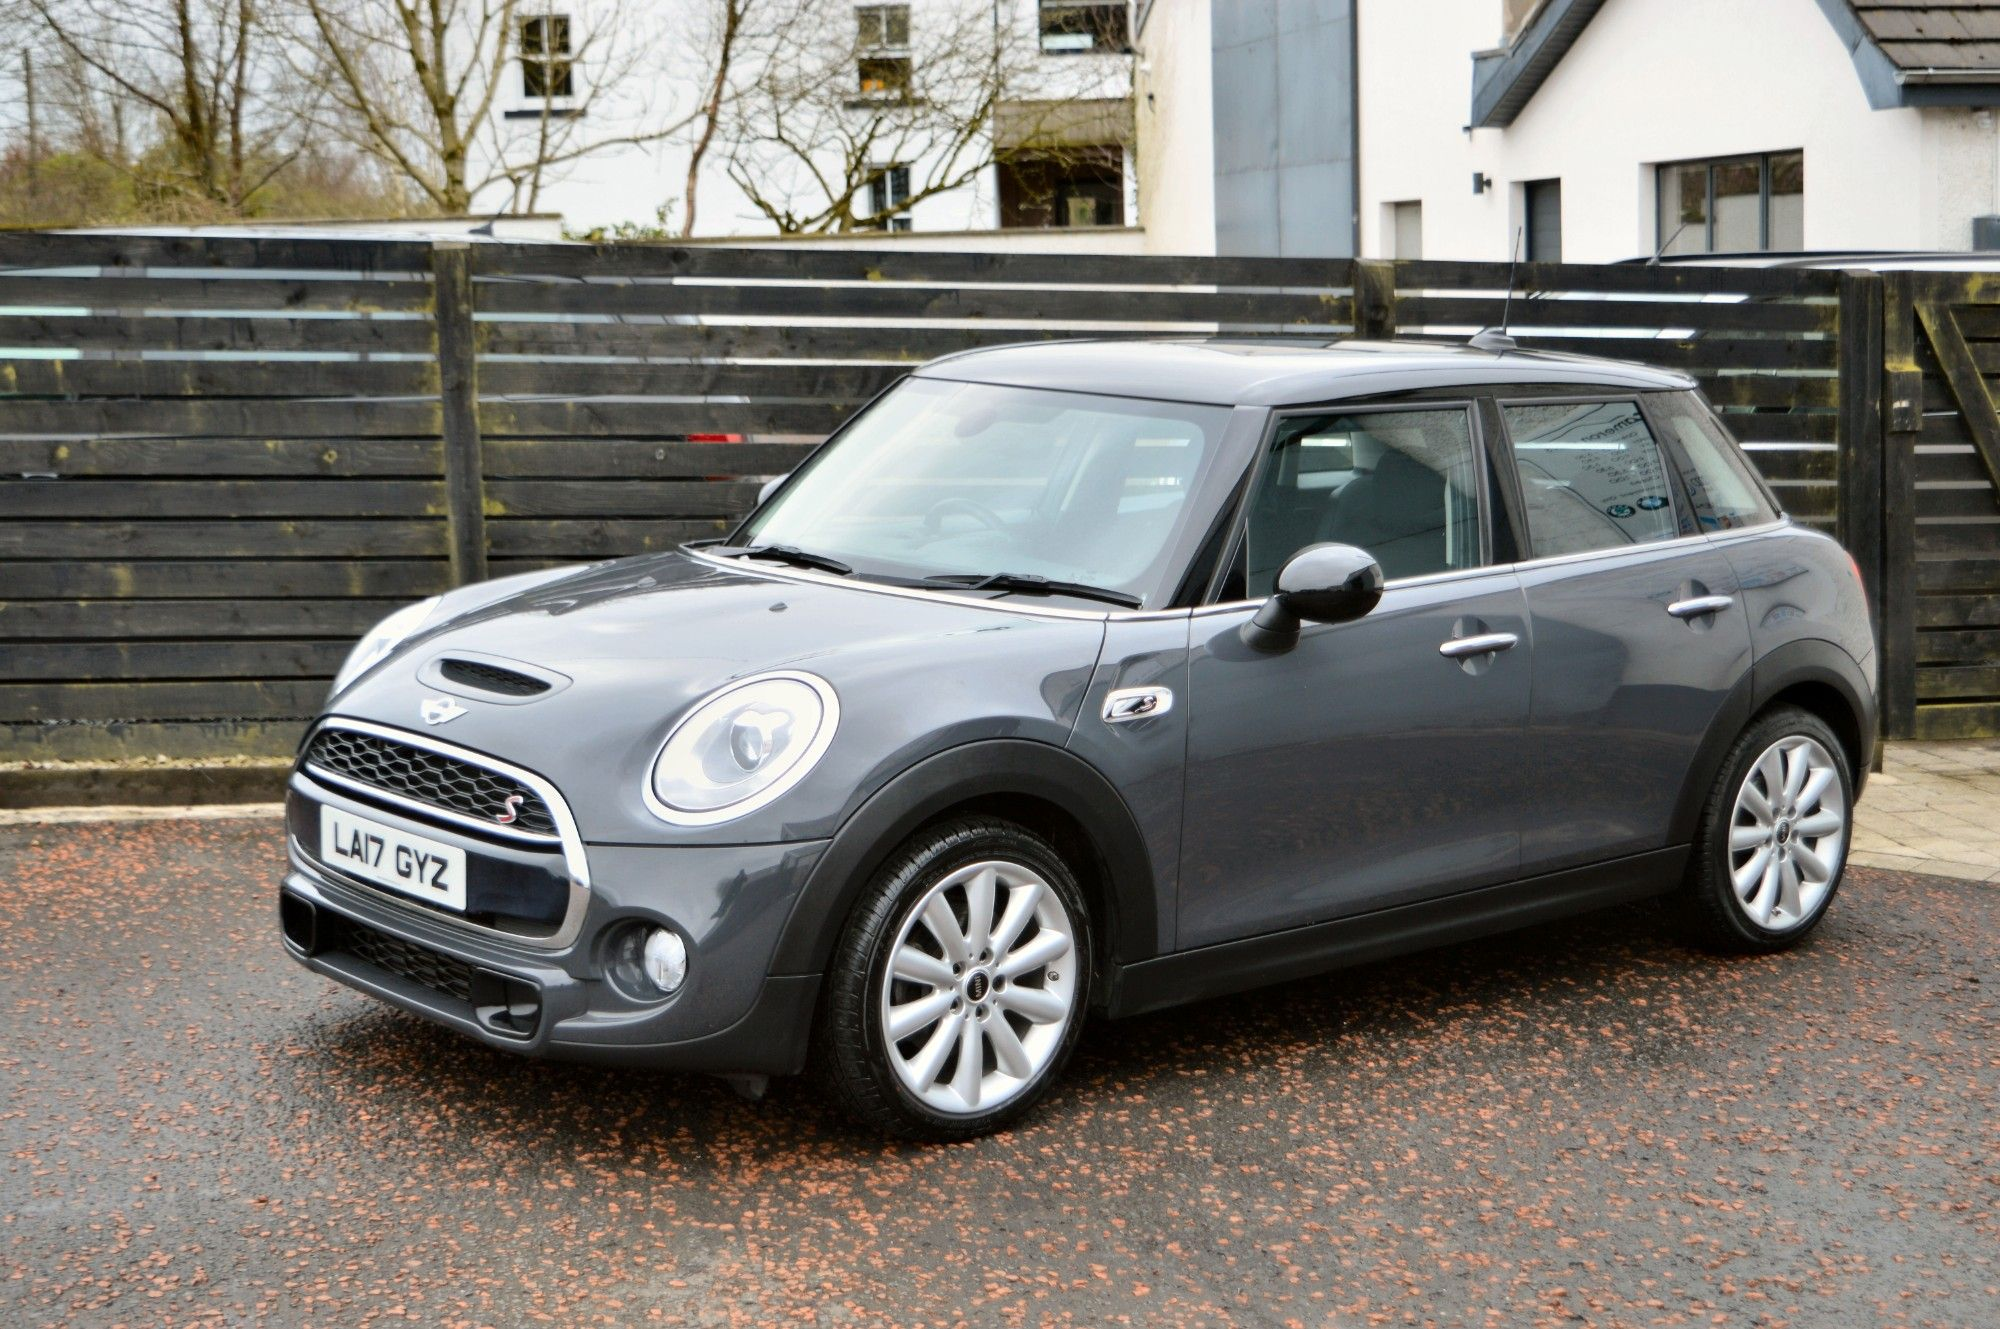 USED 2017 17 MINI HATCH COOPER 2.0 COOPER SD 5d 168 BHP 6 MONTHS RAC WARRANTY FREE + 12 MONTHS ROAD SIDE RECOVERY!